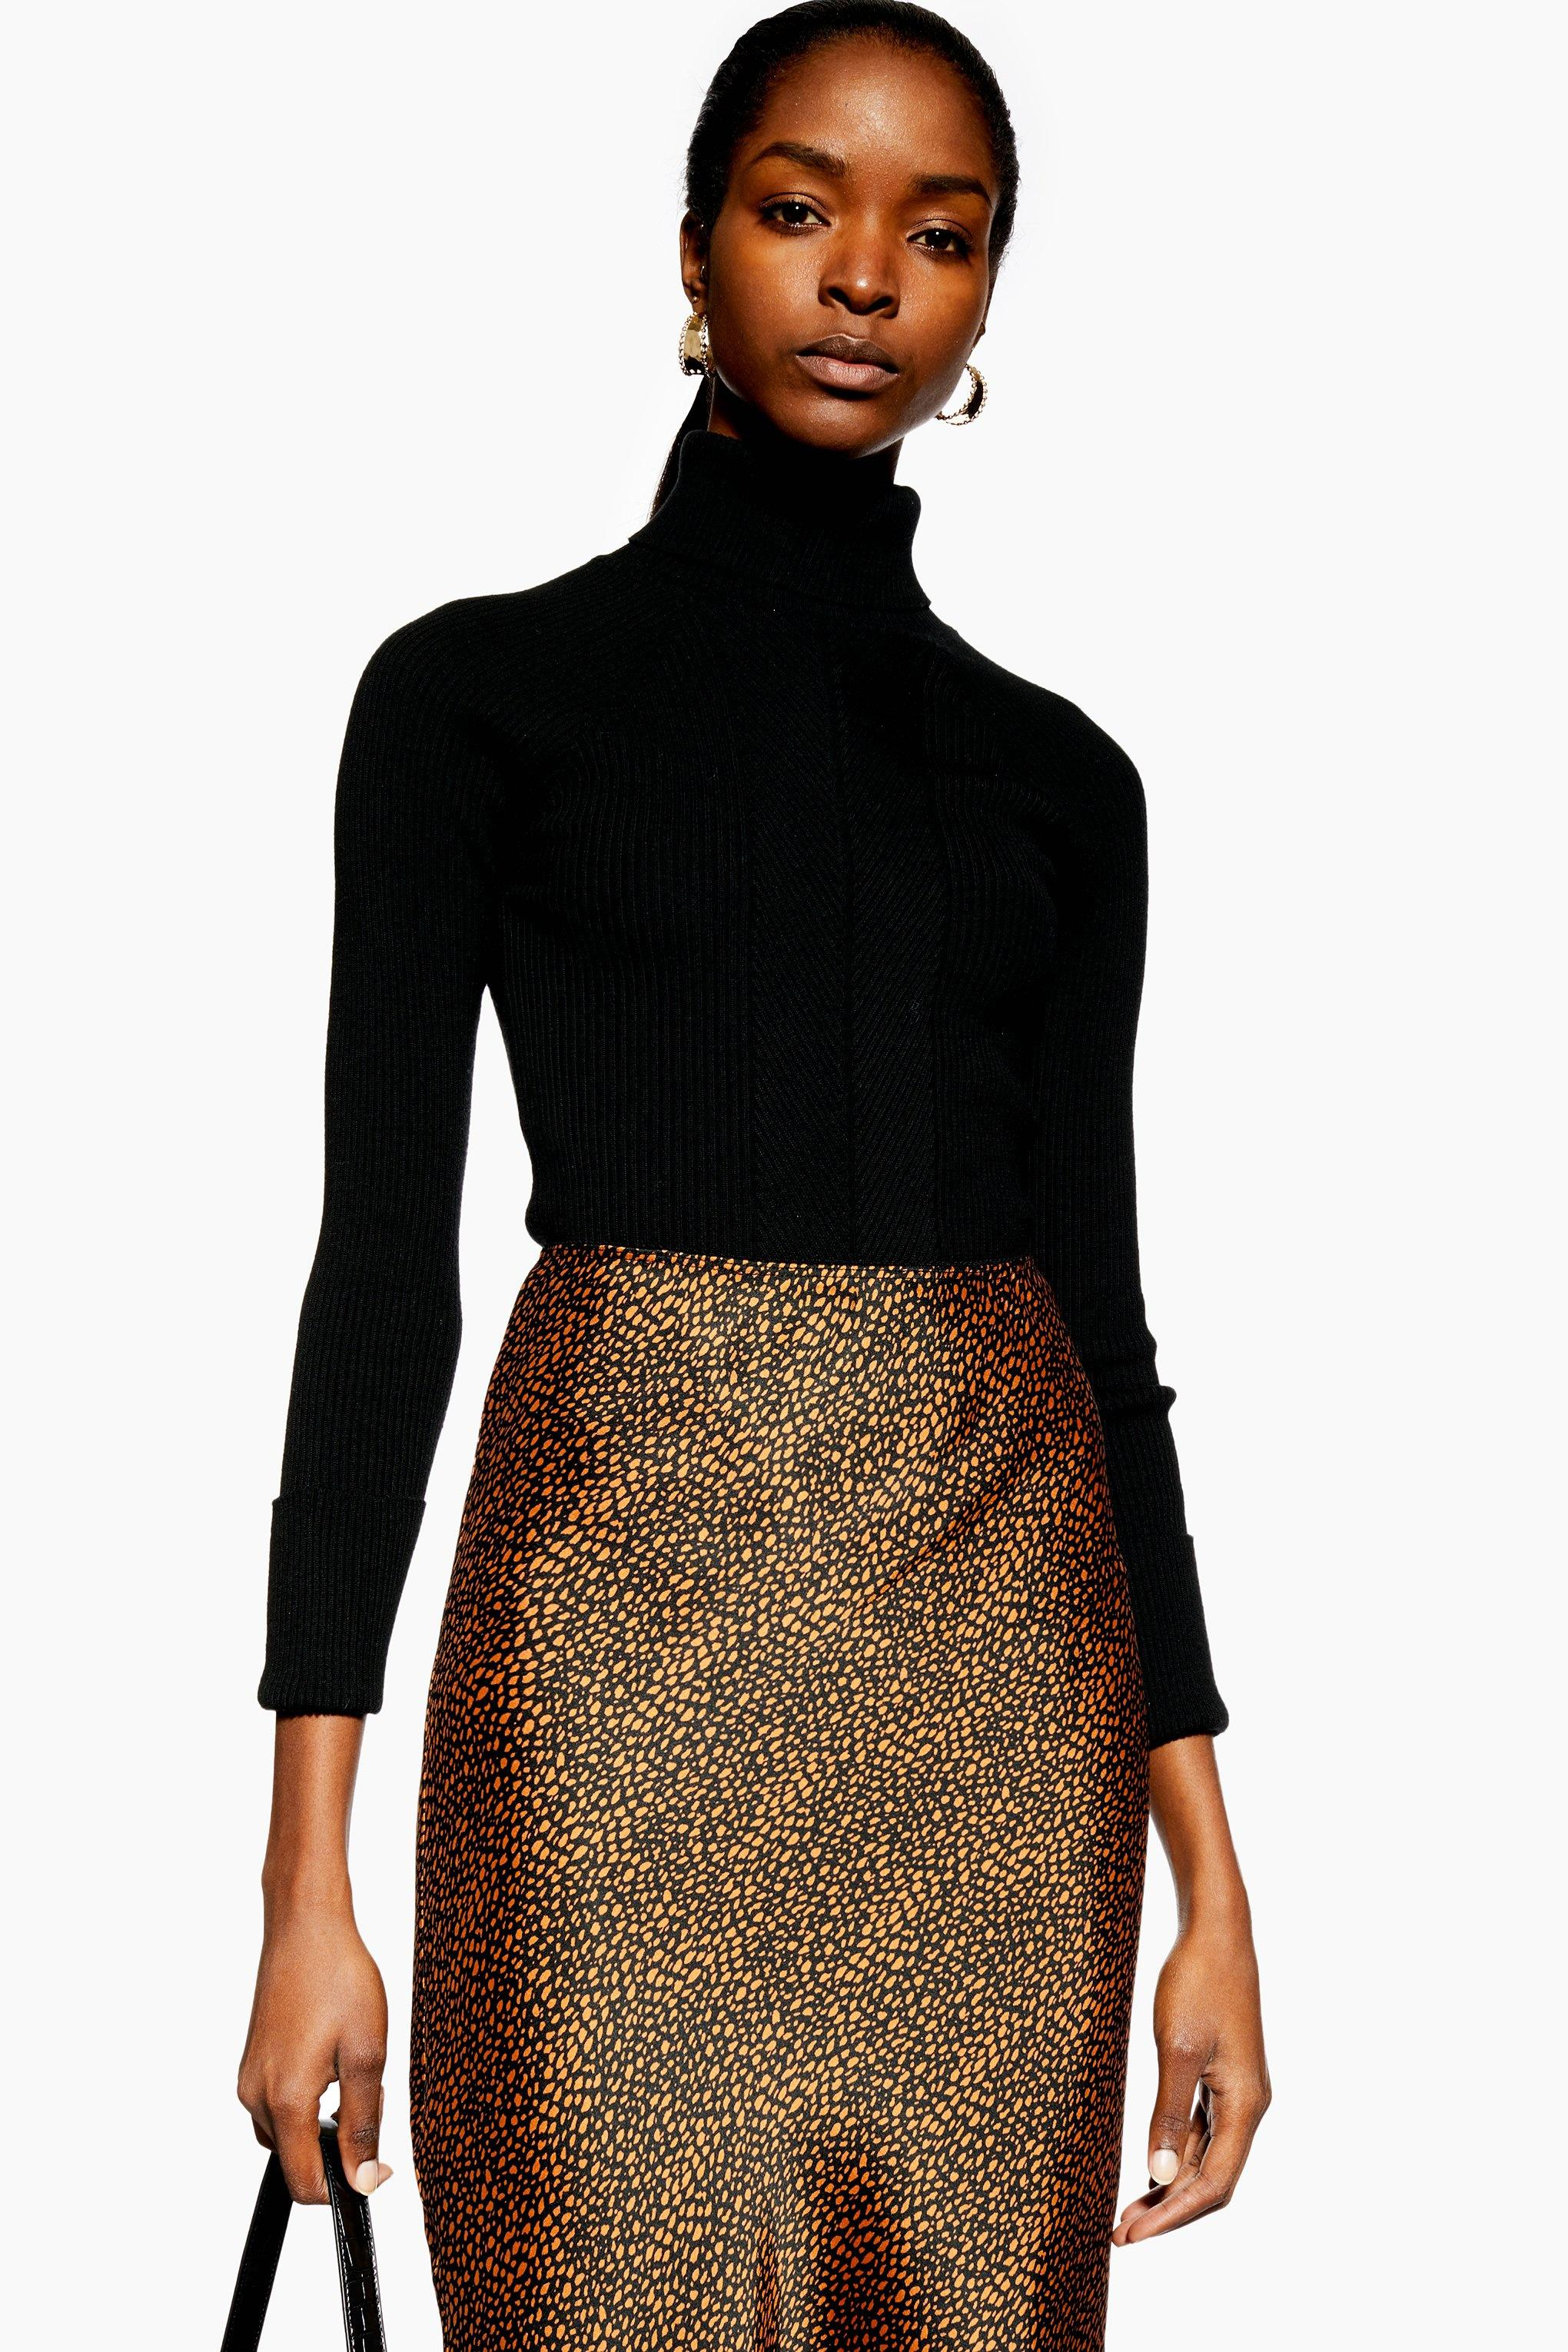 details for elegant in style structural disablities TOPSHOP Satin Animal Spot Midi Skirt in Rust (Brown) - Lyst